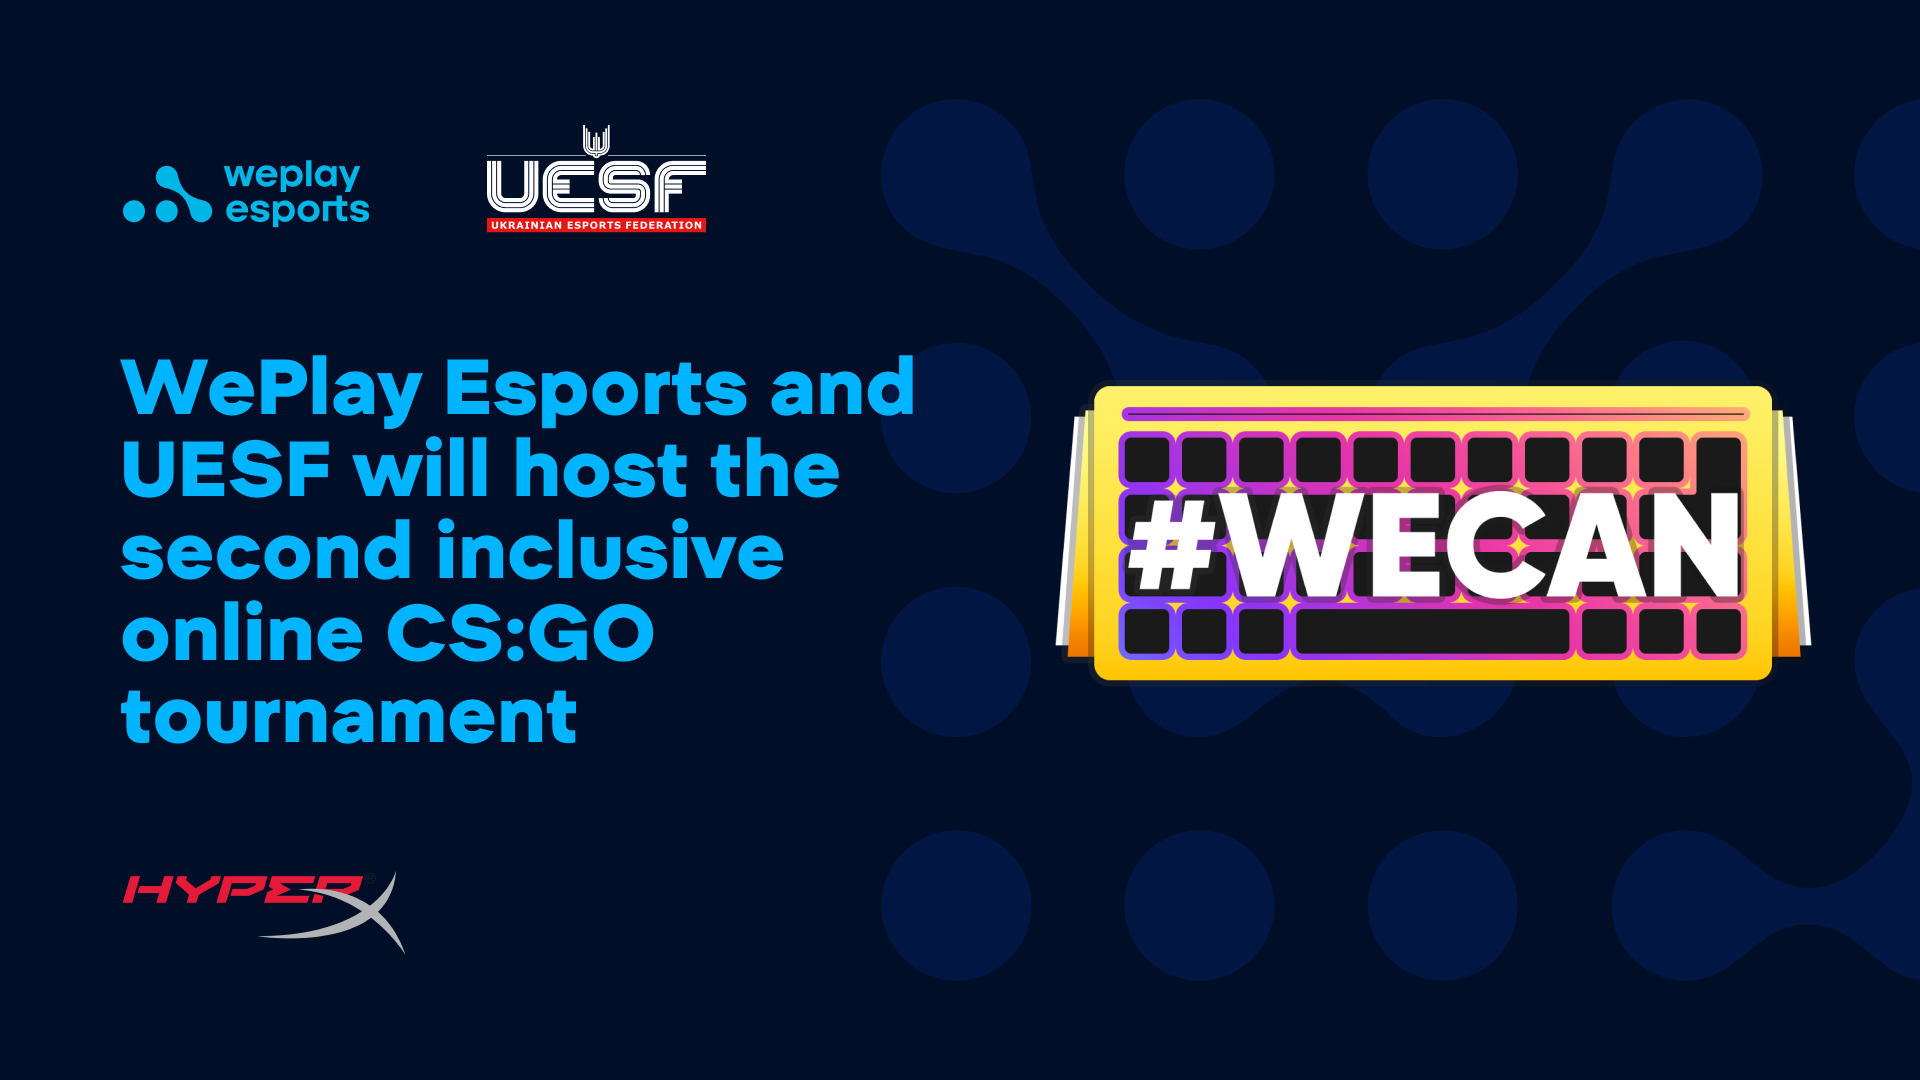 WePlay Esports and UESF will host the second inclusive online CS:GO tournament